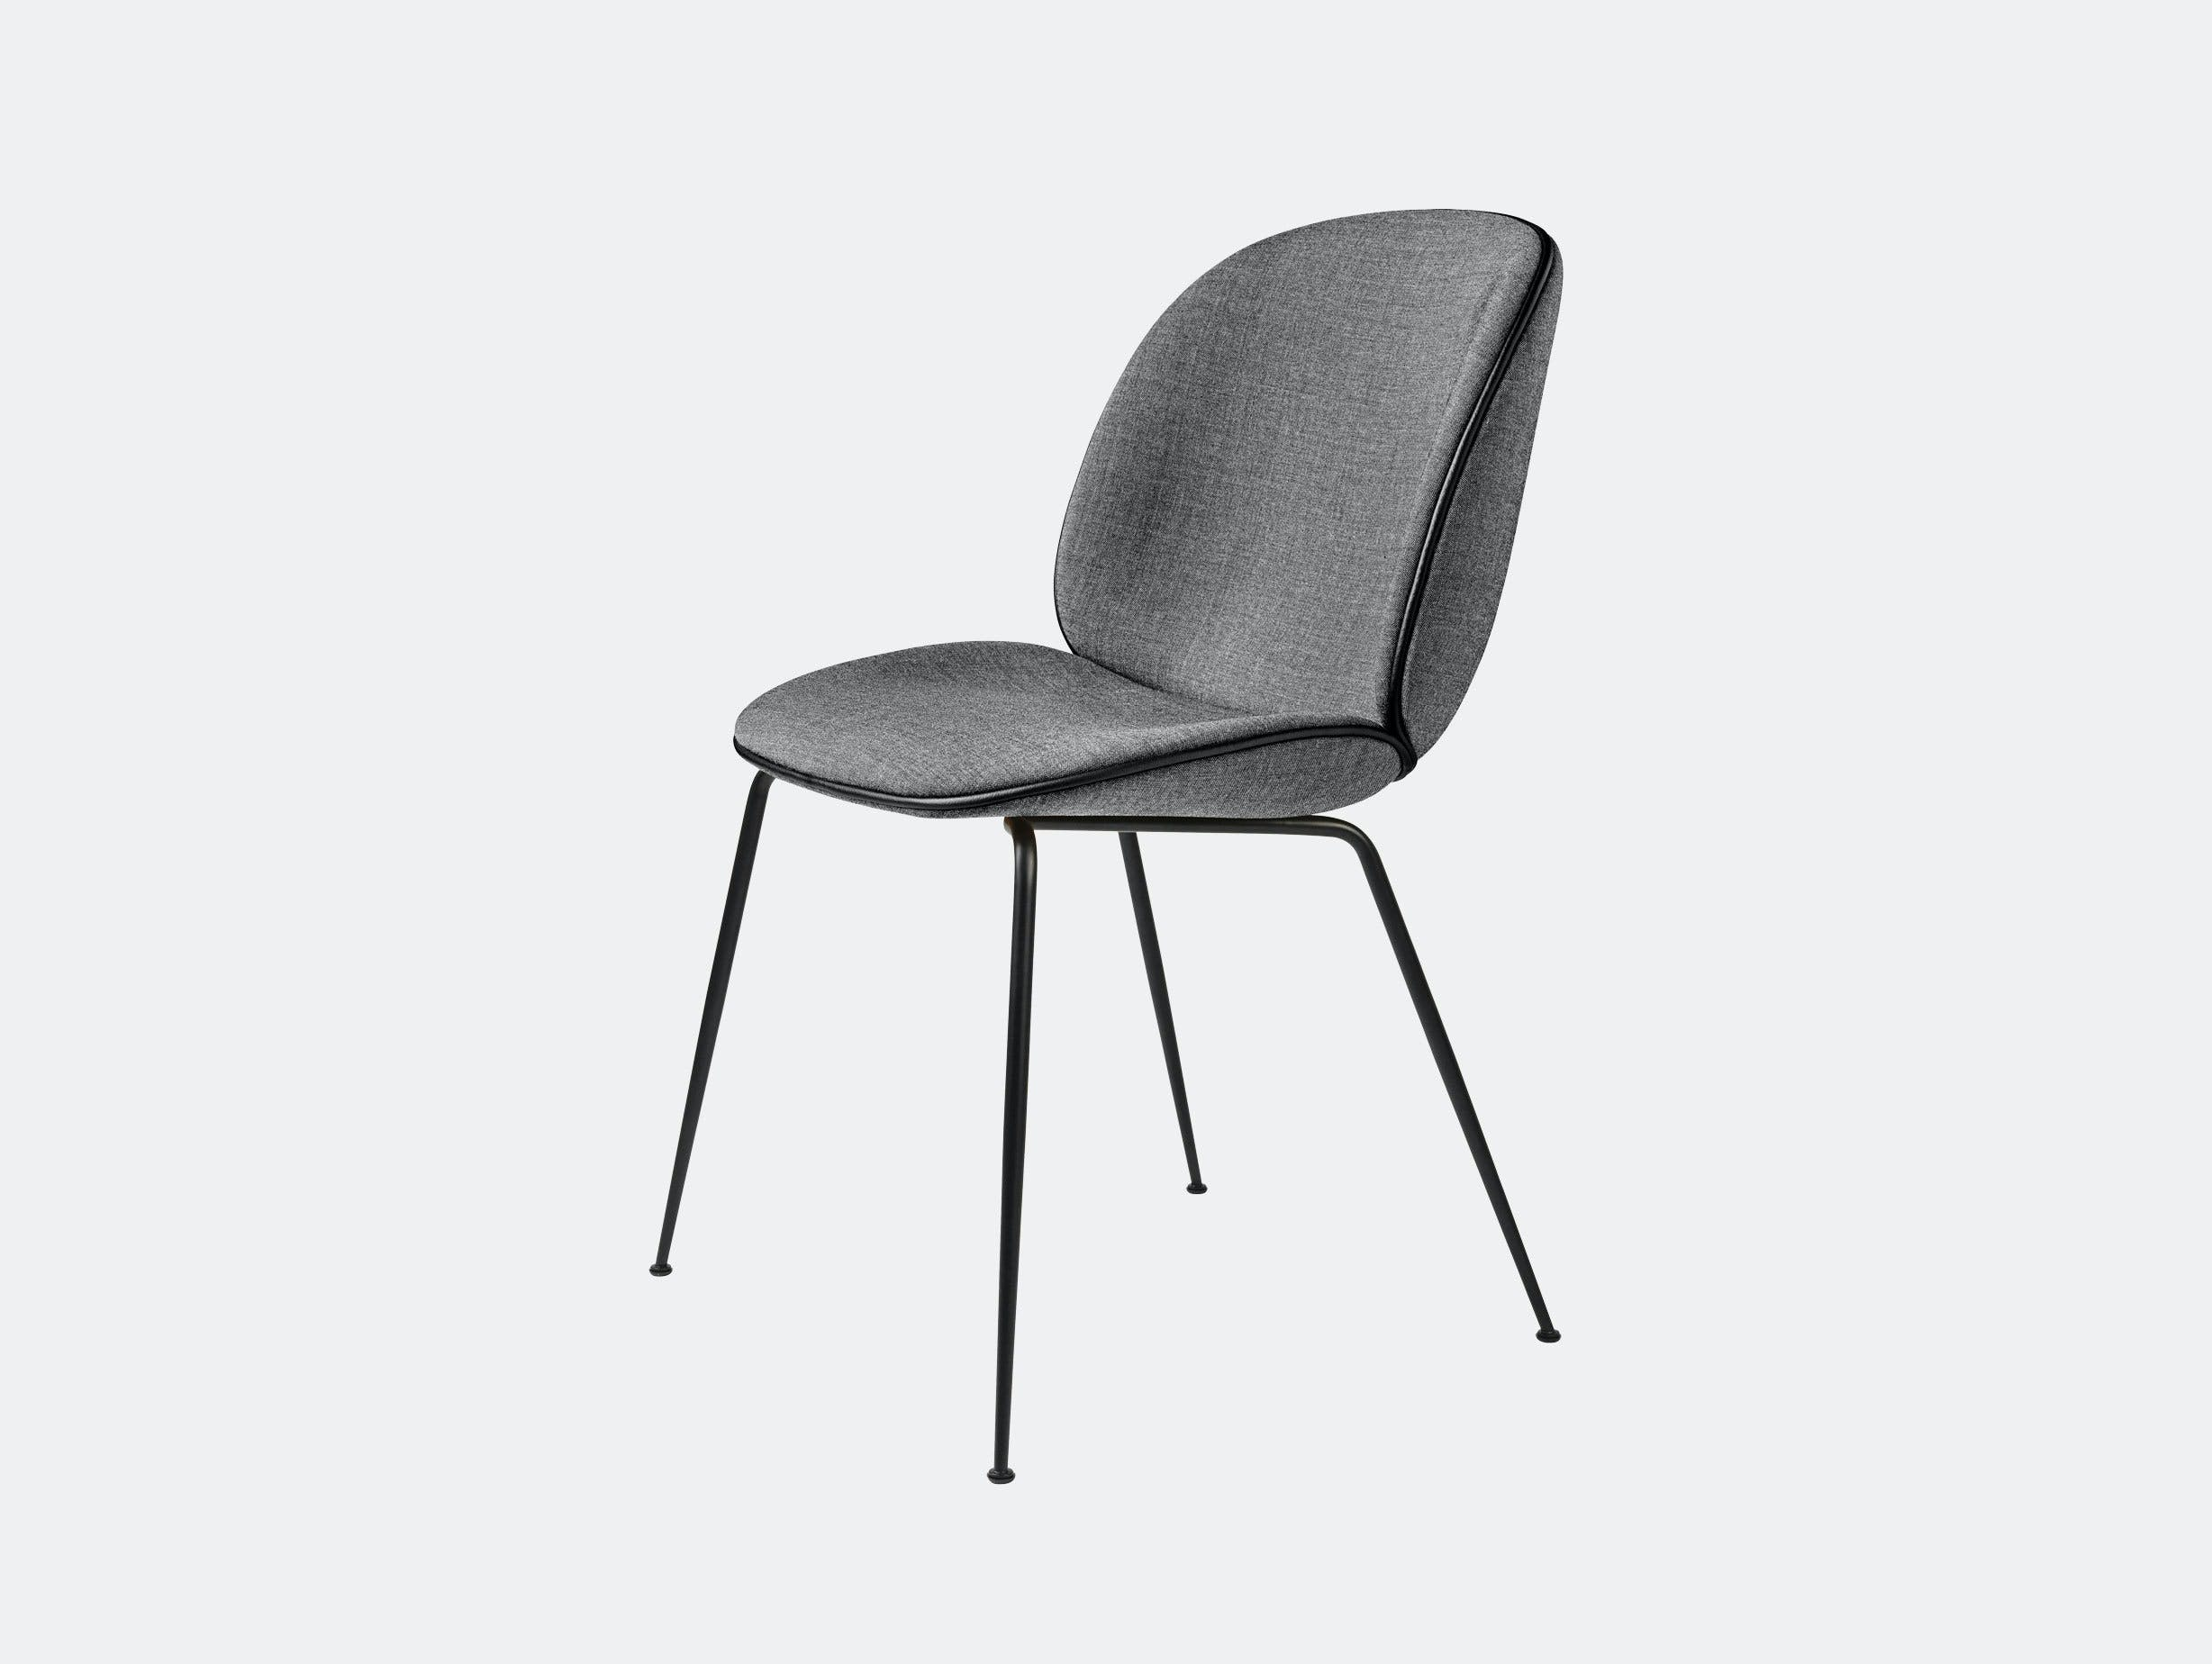 Gubi Beetle Dining Chair Remix 152 Gamfratesi